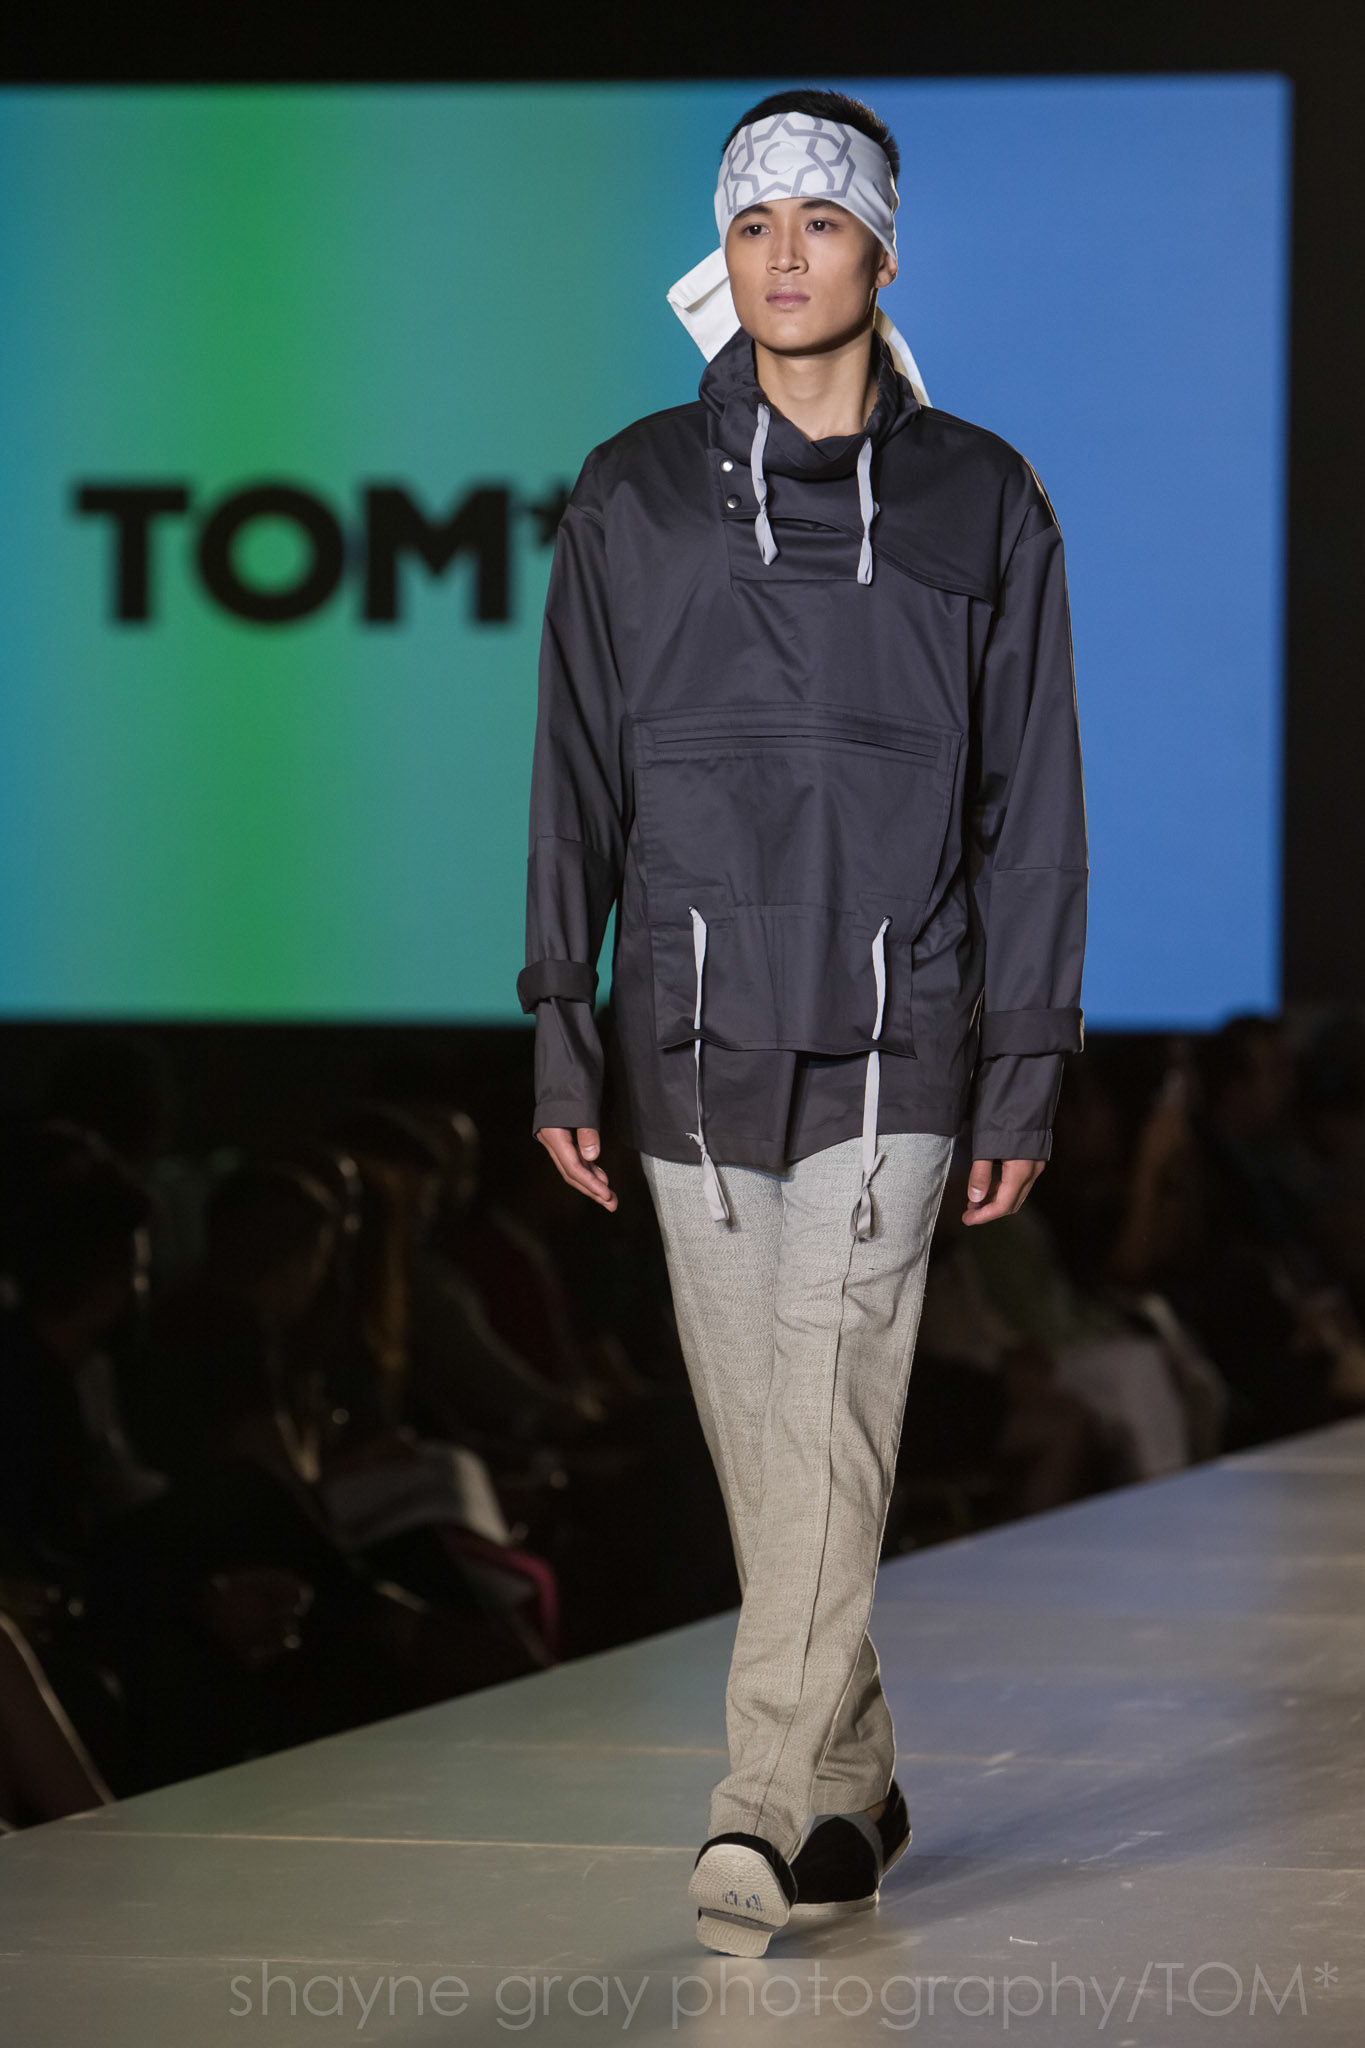 Shayne-Gray-Toronto-men's-fashion_week-TOM-christian-l'enfant-roi-6744.jpg